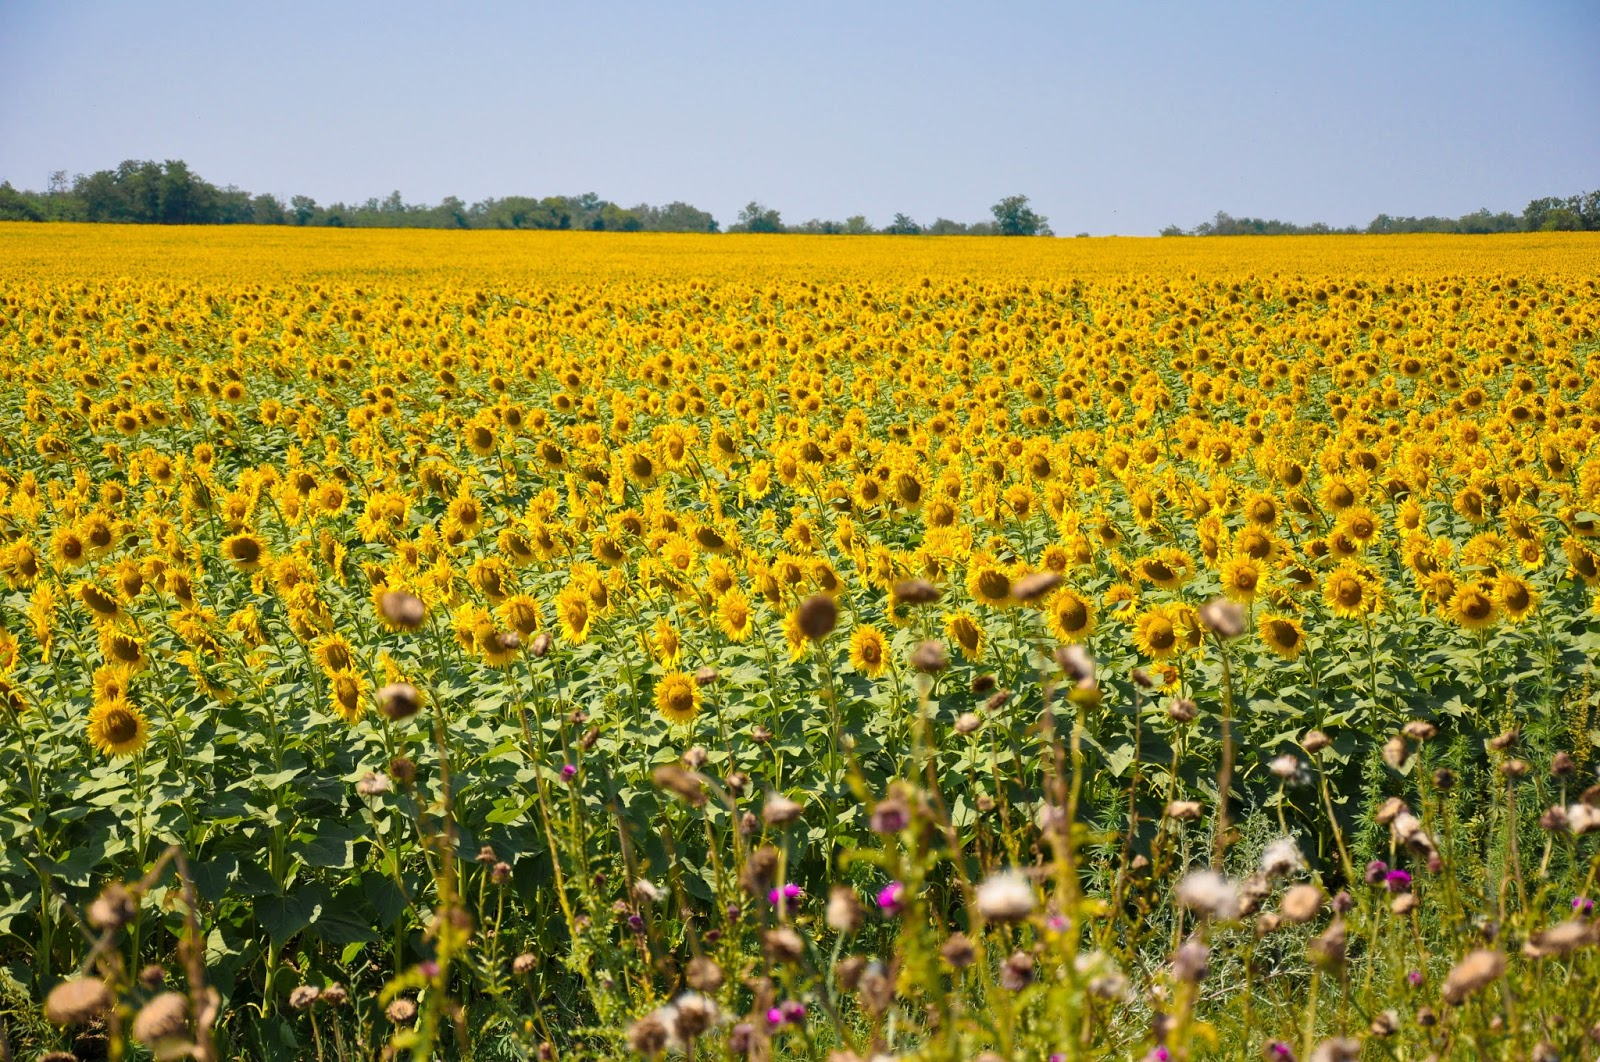 Sunflower field, Varna, Bulgaria